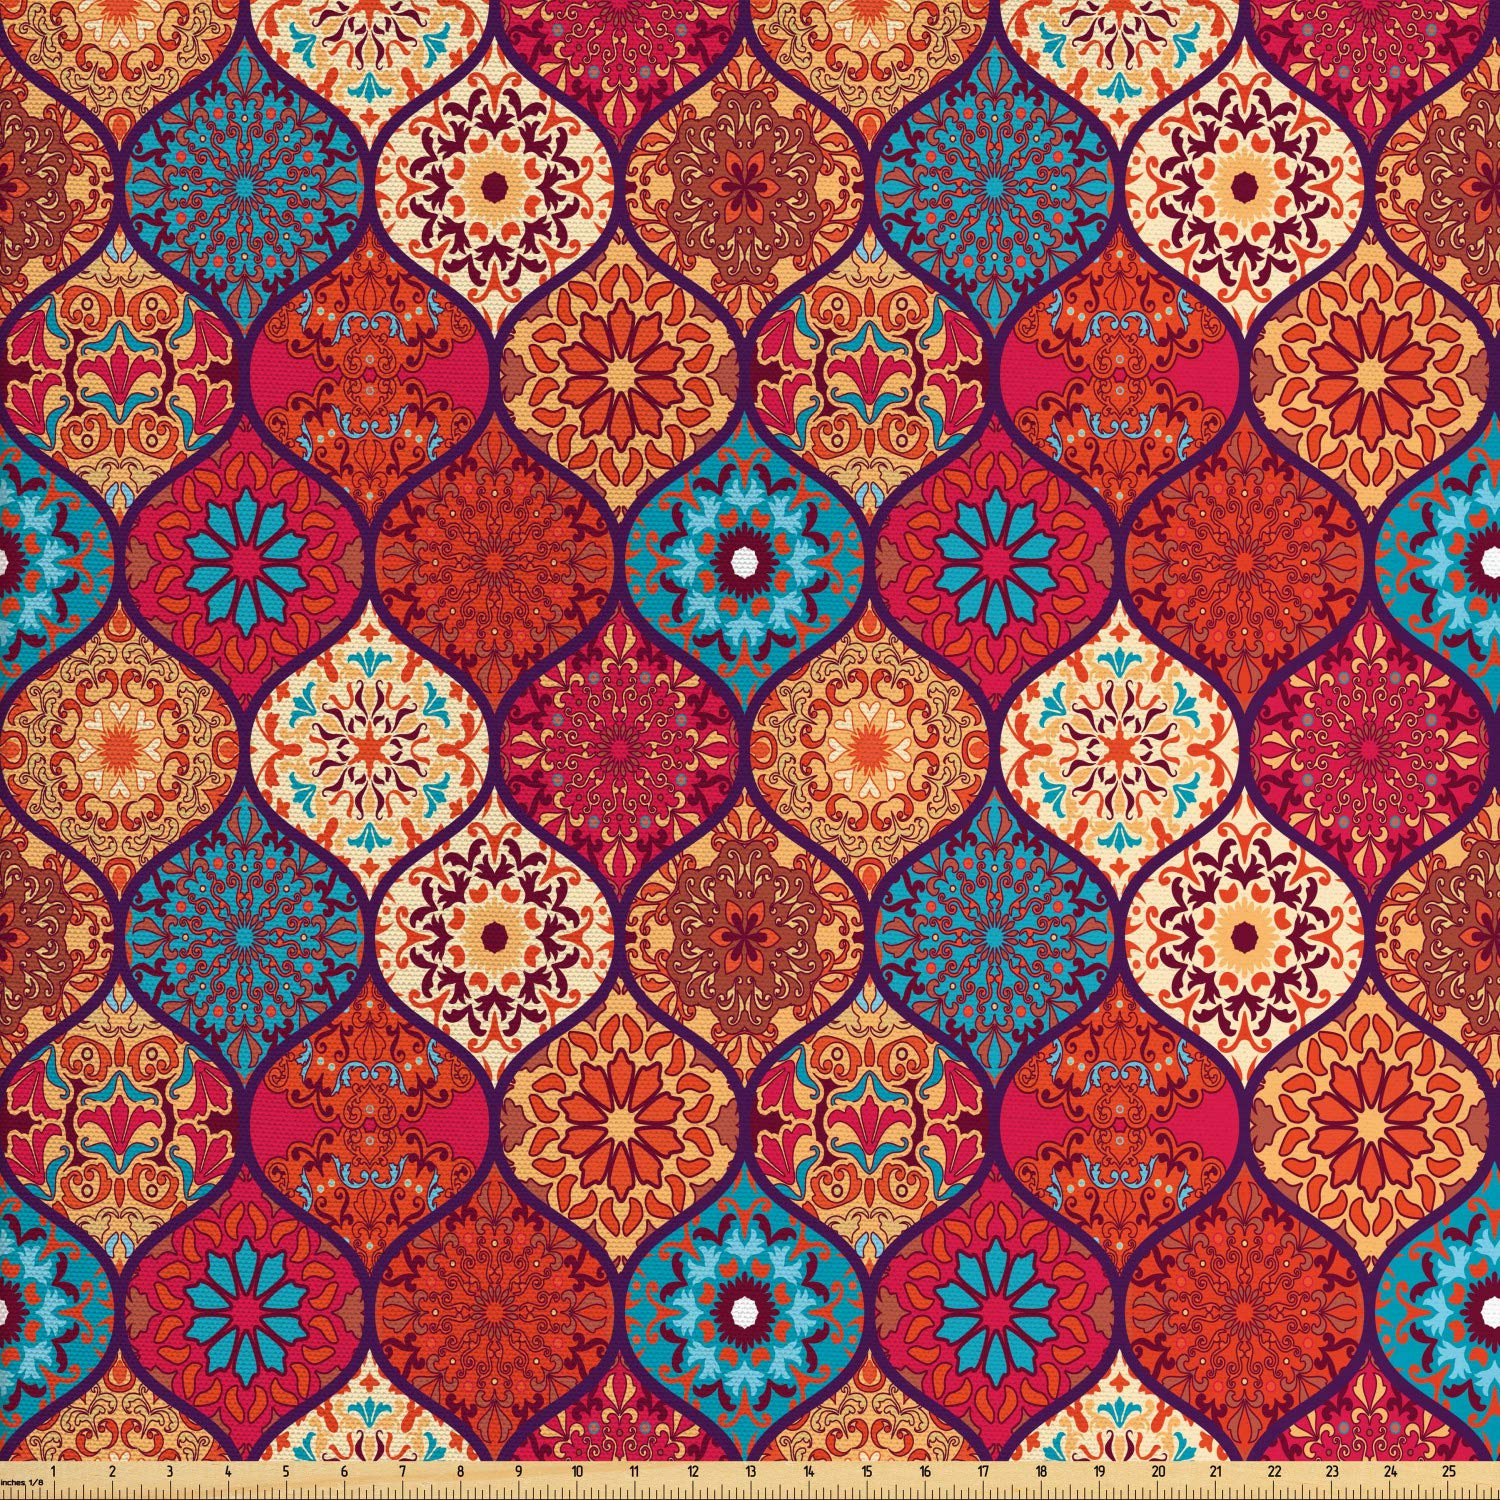 Ambesonne Moroccan Fabric by The Yard, Oriental Wavy Curvy Pattern with Spring Nature Inspired Retro Style Art Motifs, Decorative Fabric for Upholstery and Home Accents,10 Yards, Multicolor